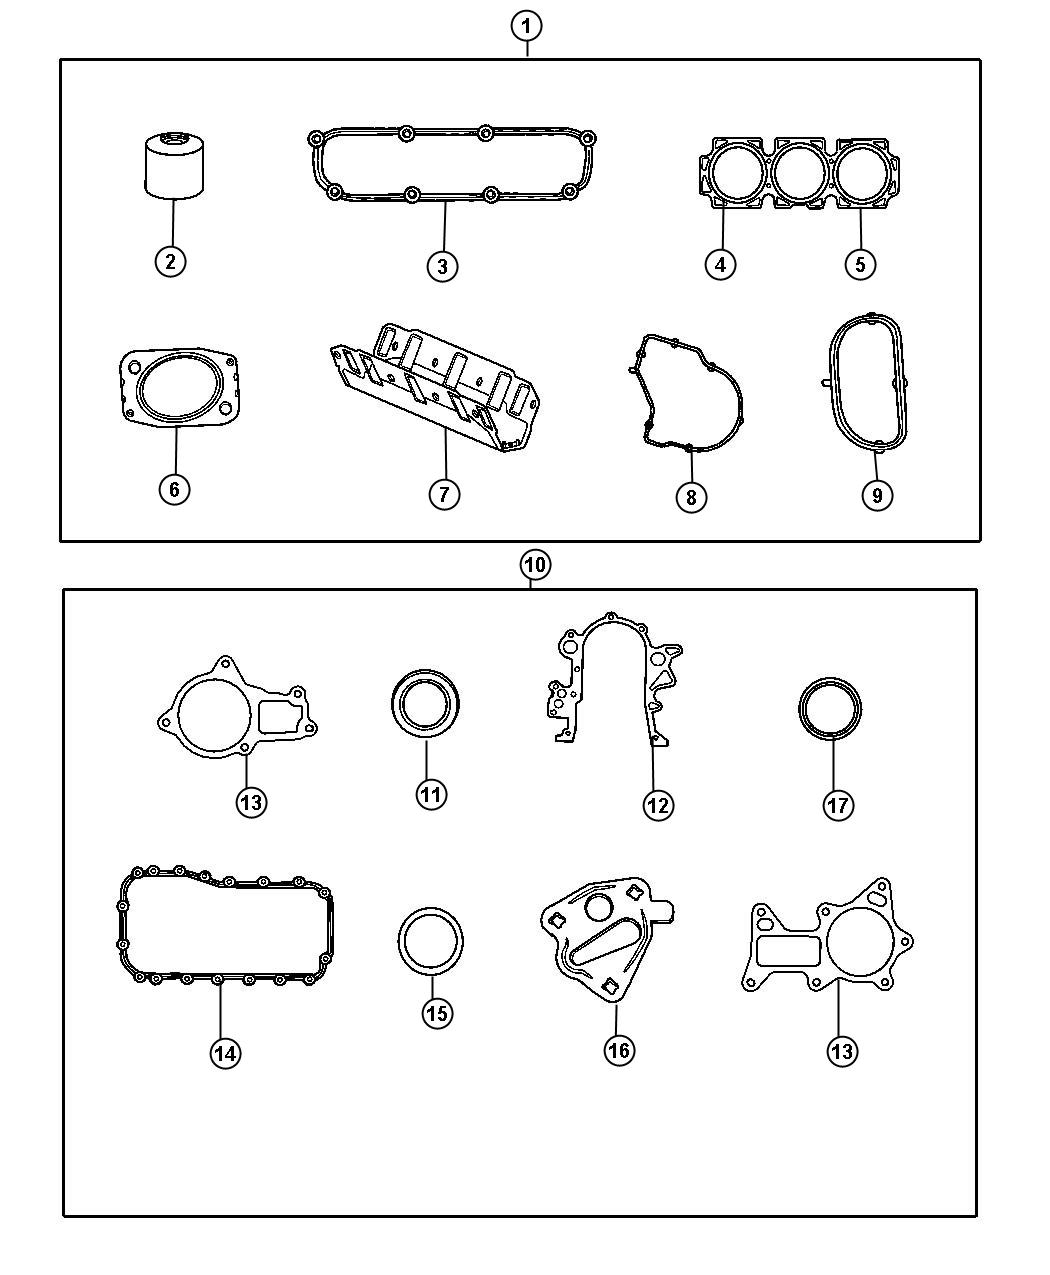 Gasket Packages 2.9L [2.9L V6 OHV Engine]. Diagram